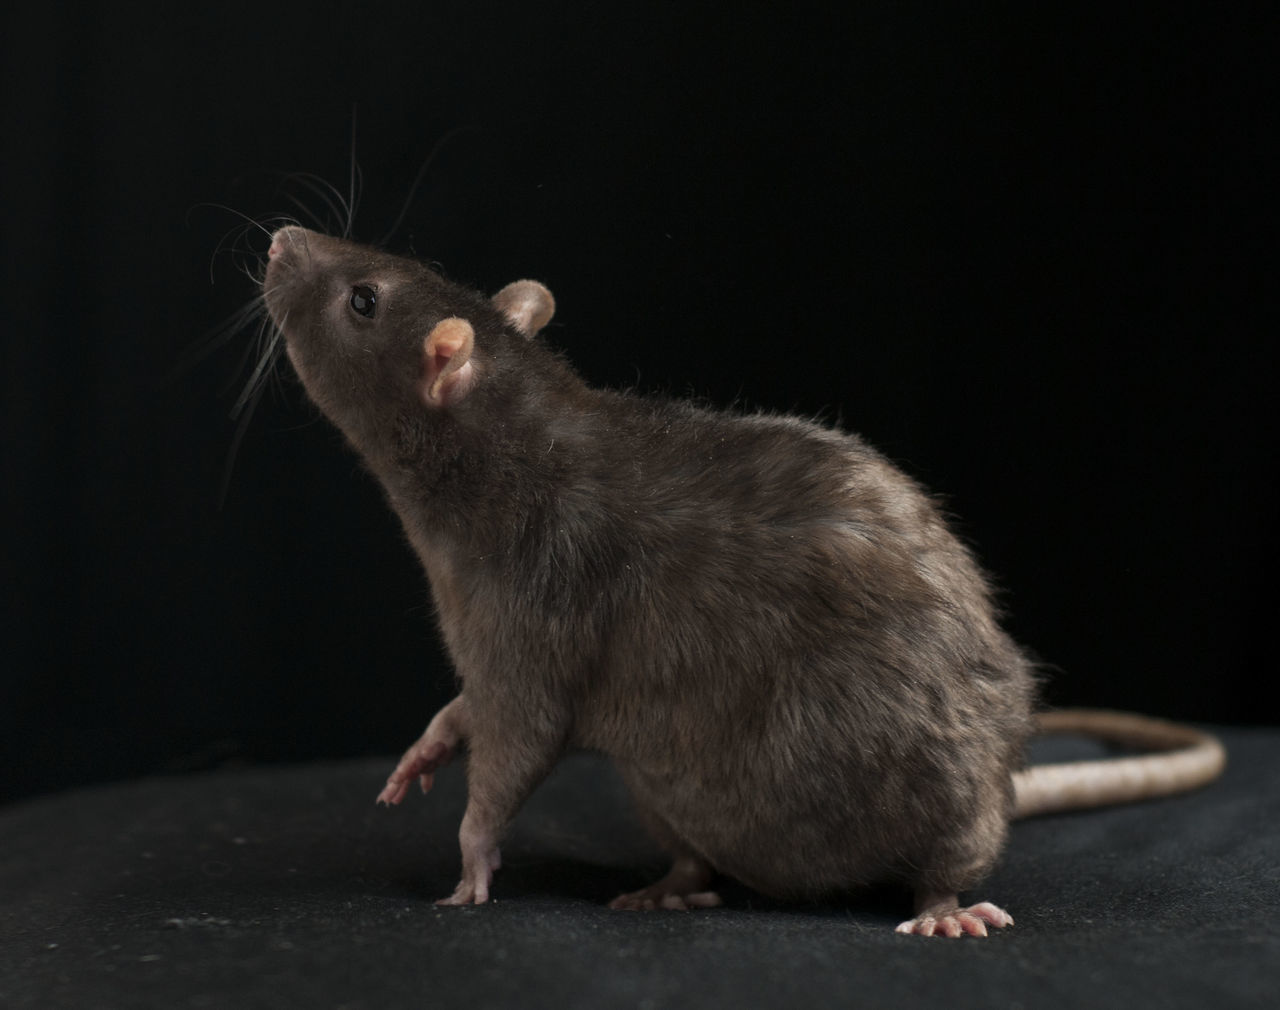 Rattus norvegicus, the common brown rat Bridge Bro Common Rat Curiosity Mammal One Animal Rat Rattus Norvegicus Relaxing Rode Sitting Zoology